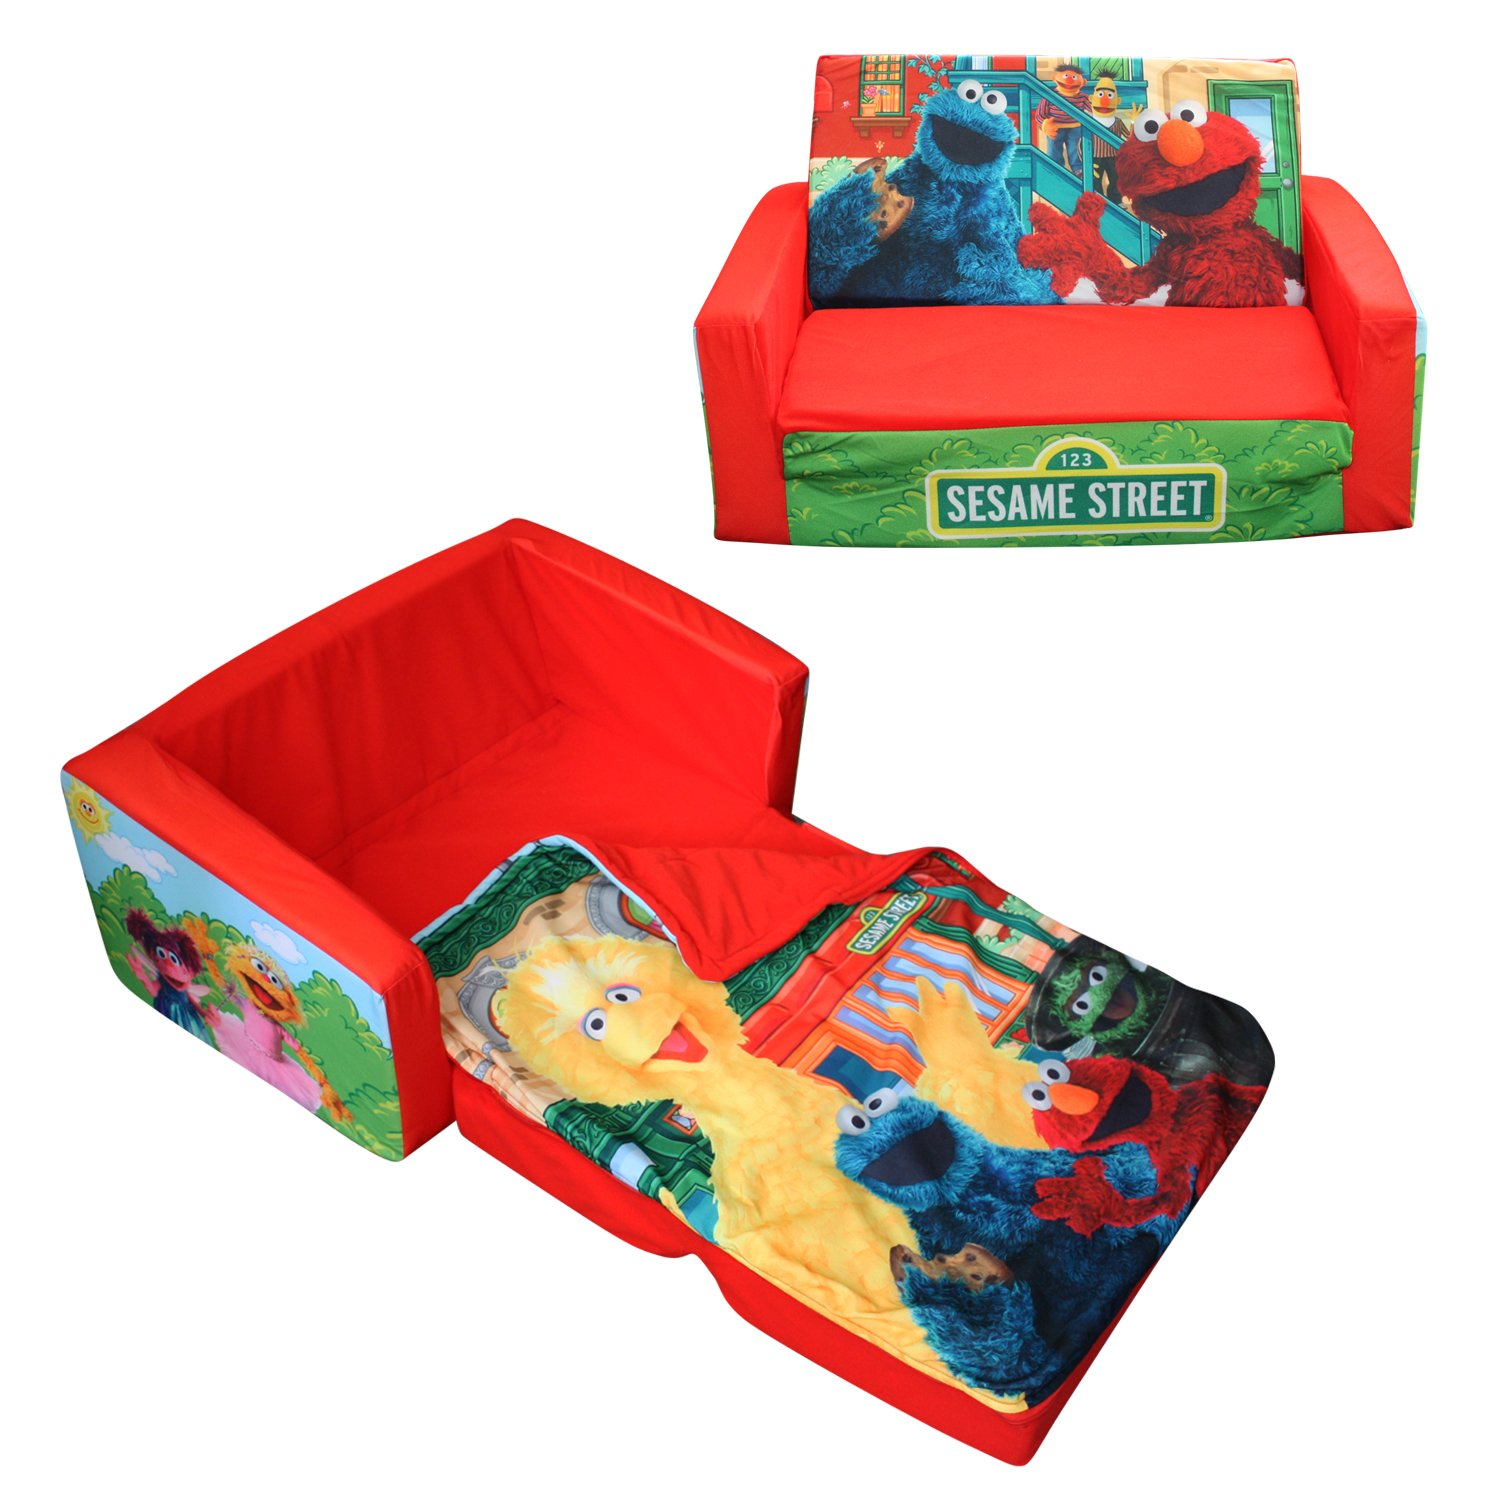 marshmallow flip open sofa disney toy story sleeper air mattress reviews for kids  fel7